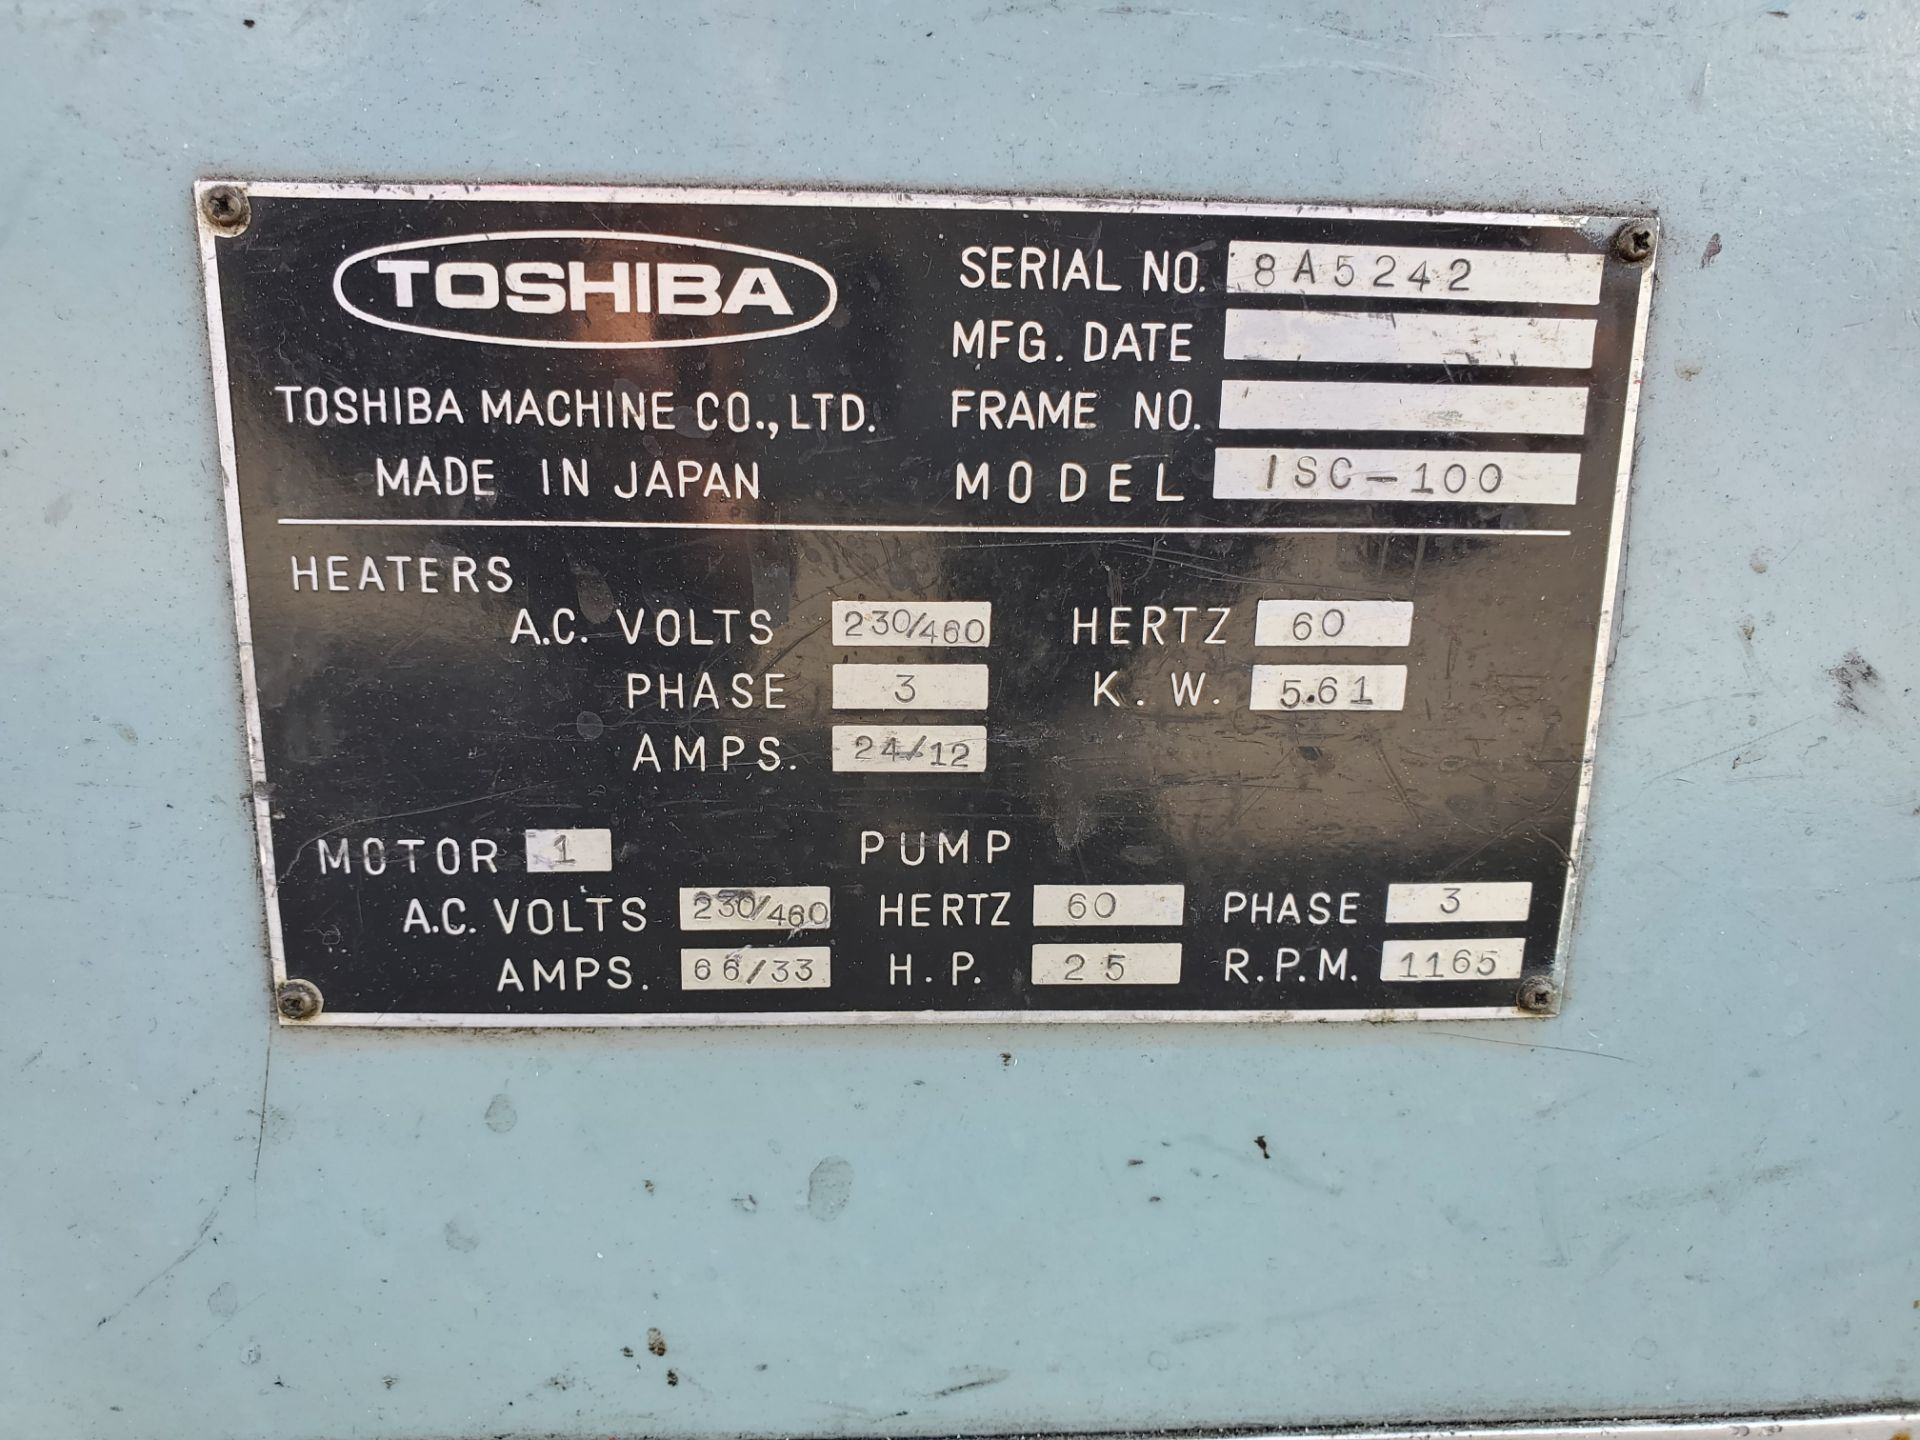 100 TON TOSHIBA ISC-100 PLASTIC INJECTION MOLDING MACHINE - Image 2 of 4